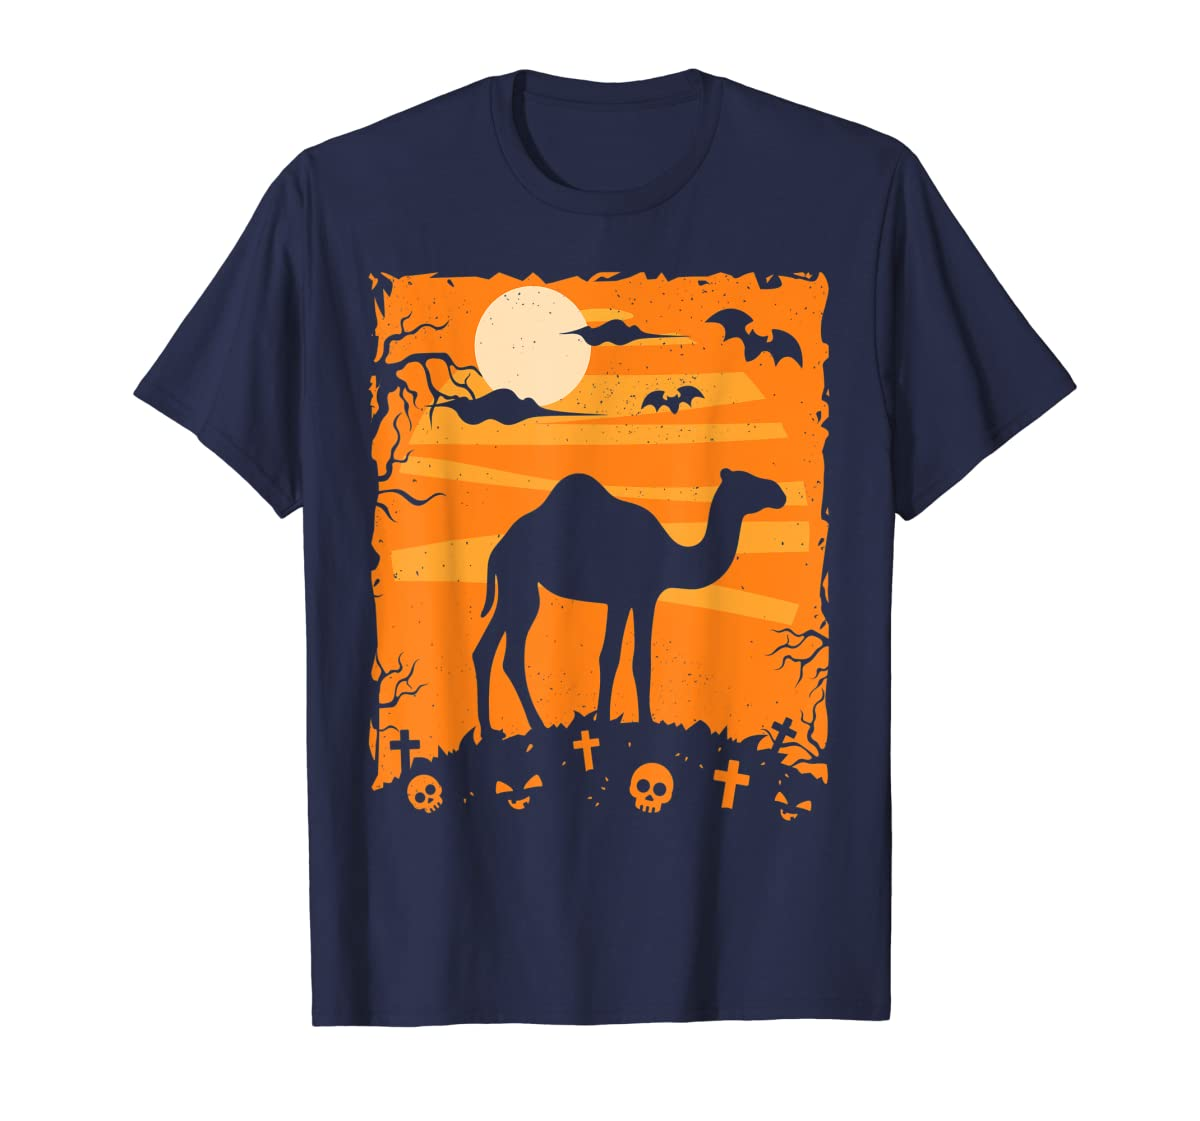 Camel Halloween Costume Animal Funny Pumpkin Outfit Gift T-Shirt-Men's T-Shirt-Navy